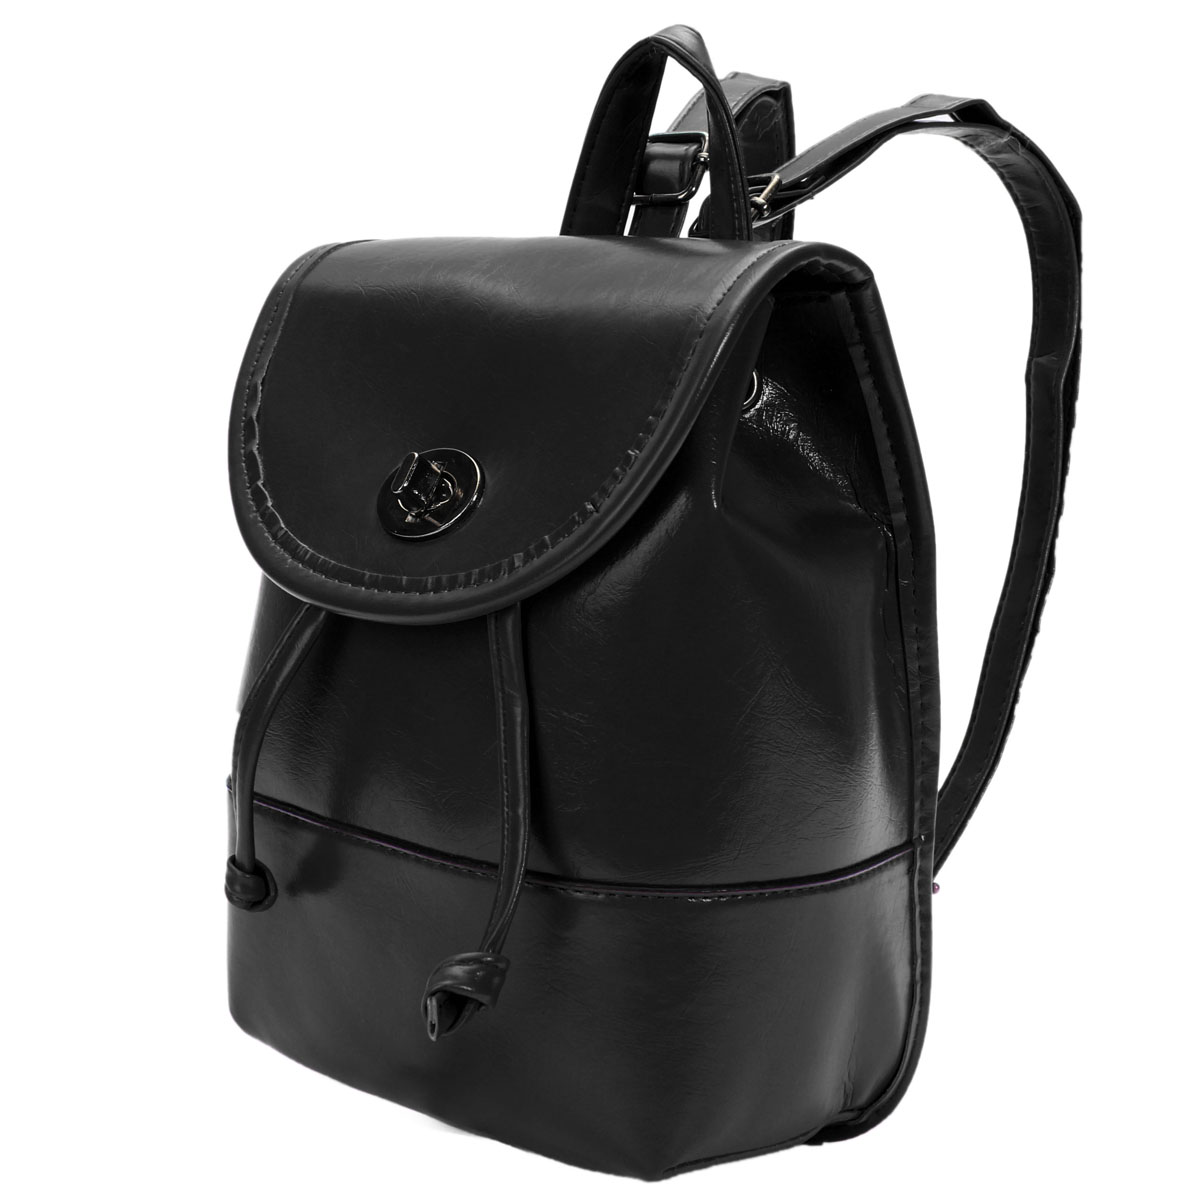 Free shipping BOTH ways on small backpack, from our vast selection of styles. Fast delivery, and 24/7/ real-person service with a smile. Click or call